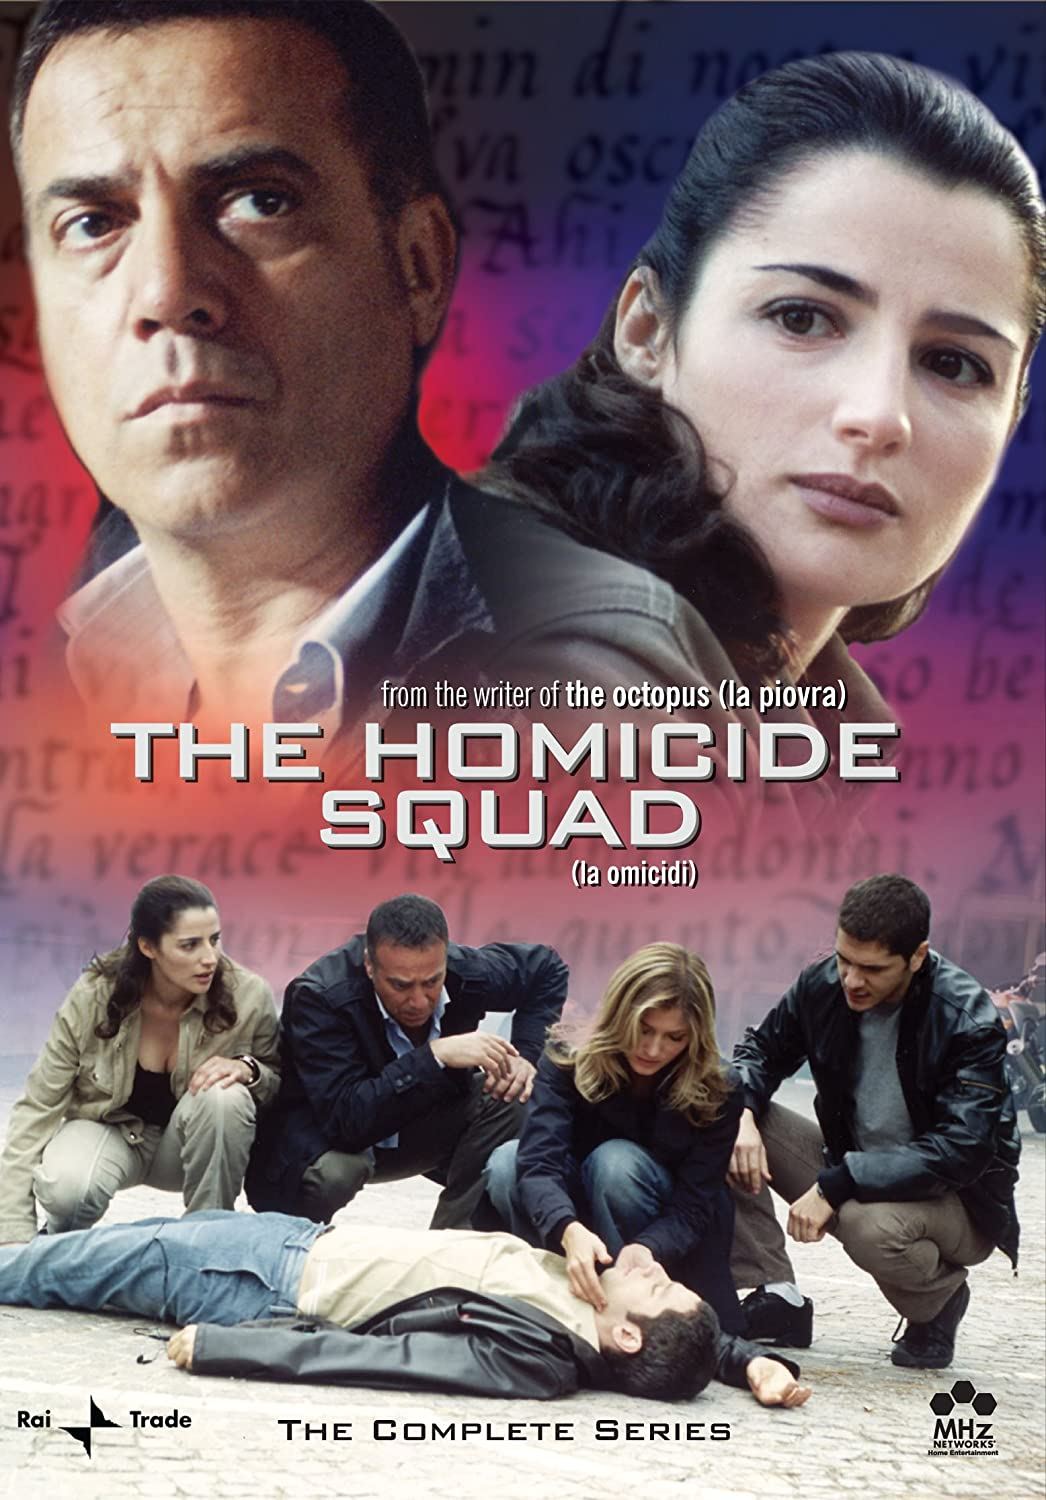 The Homicide Squad